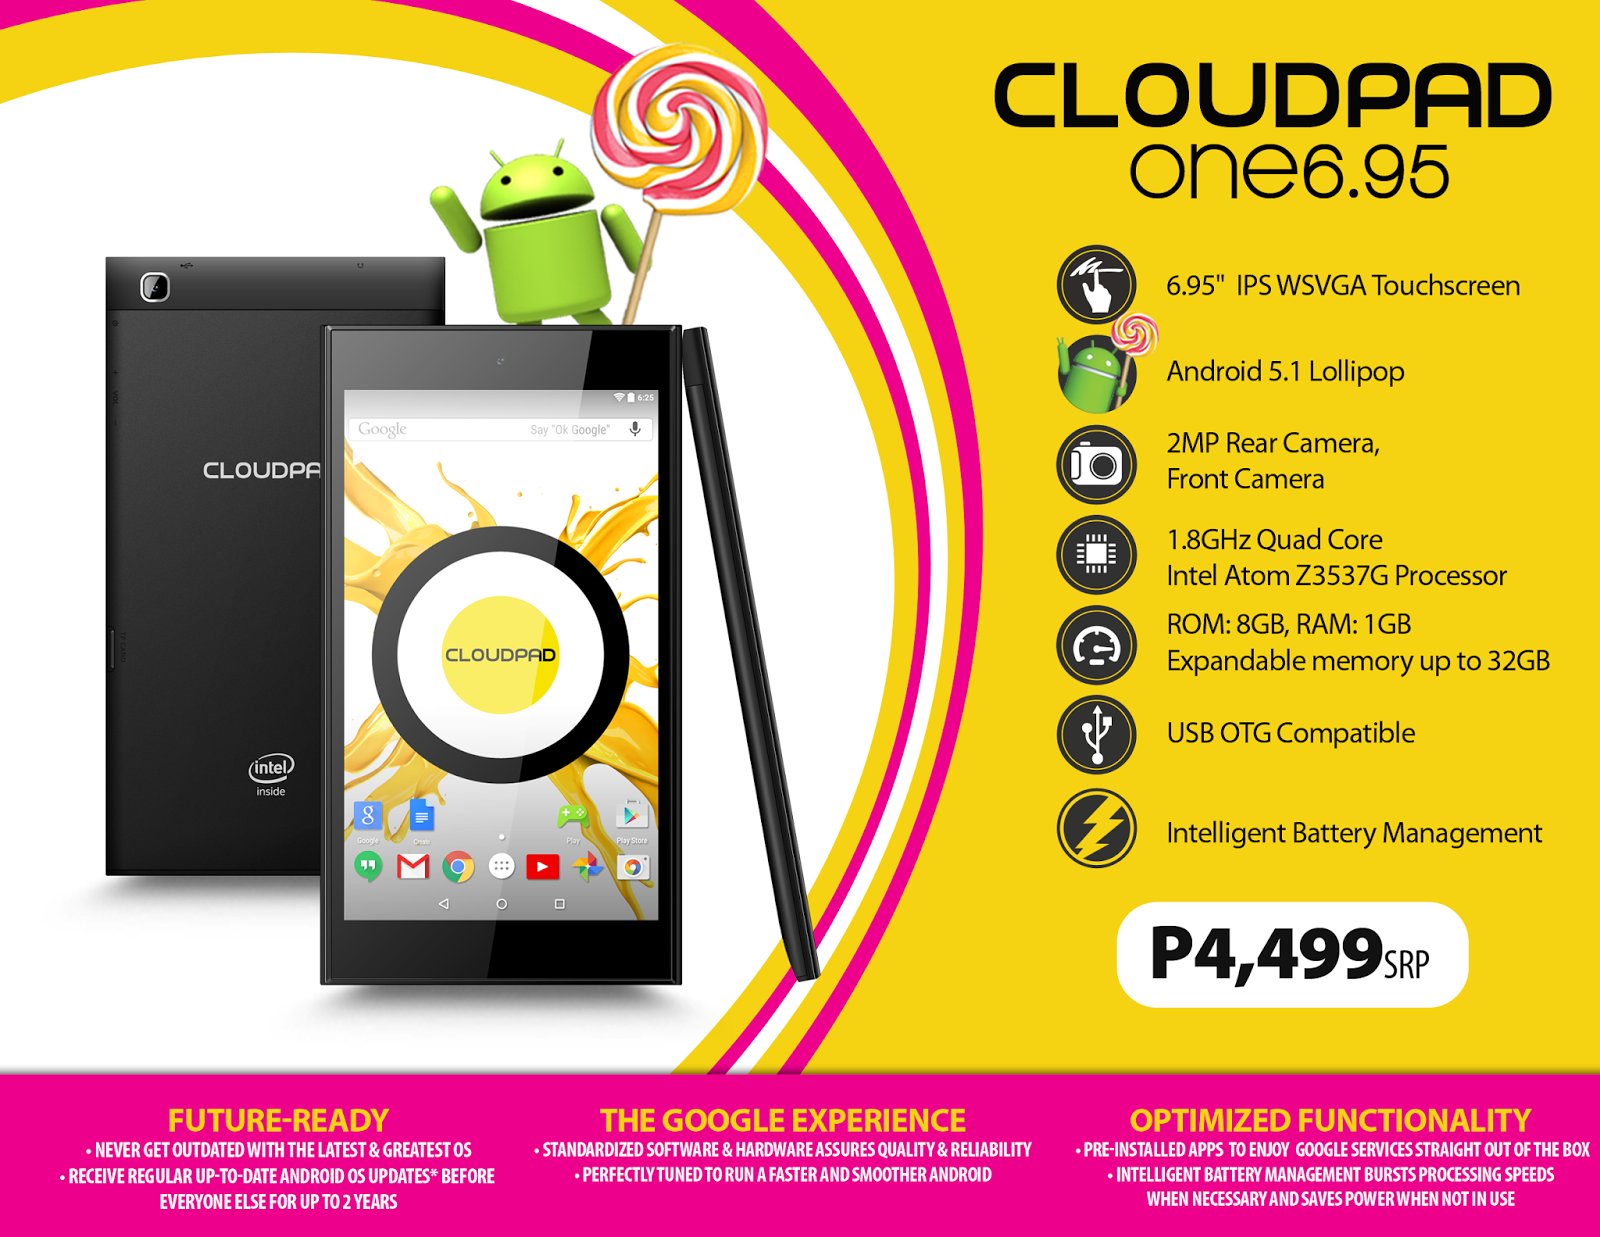 CloudPad One 6.95